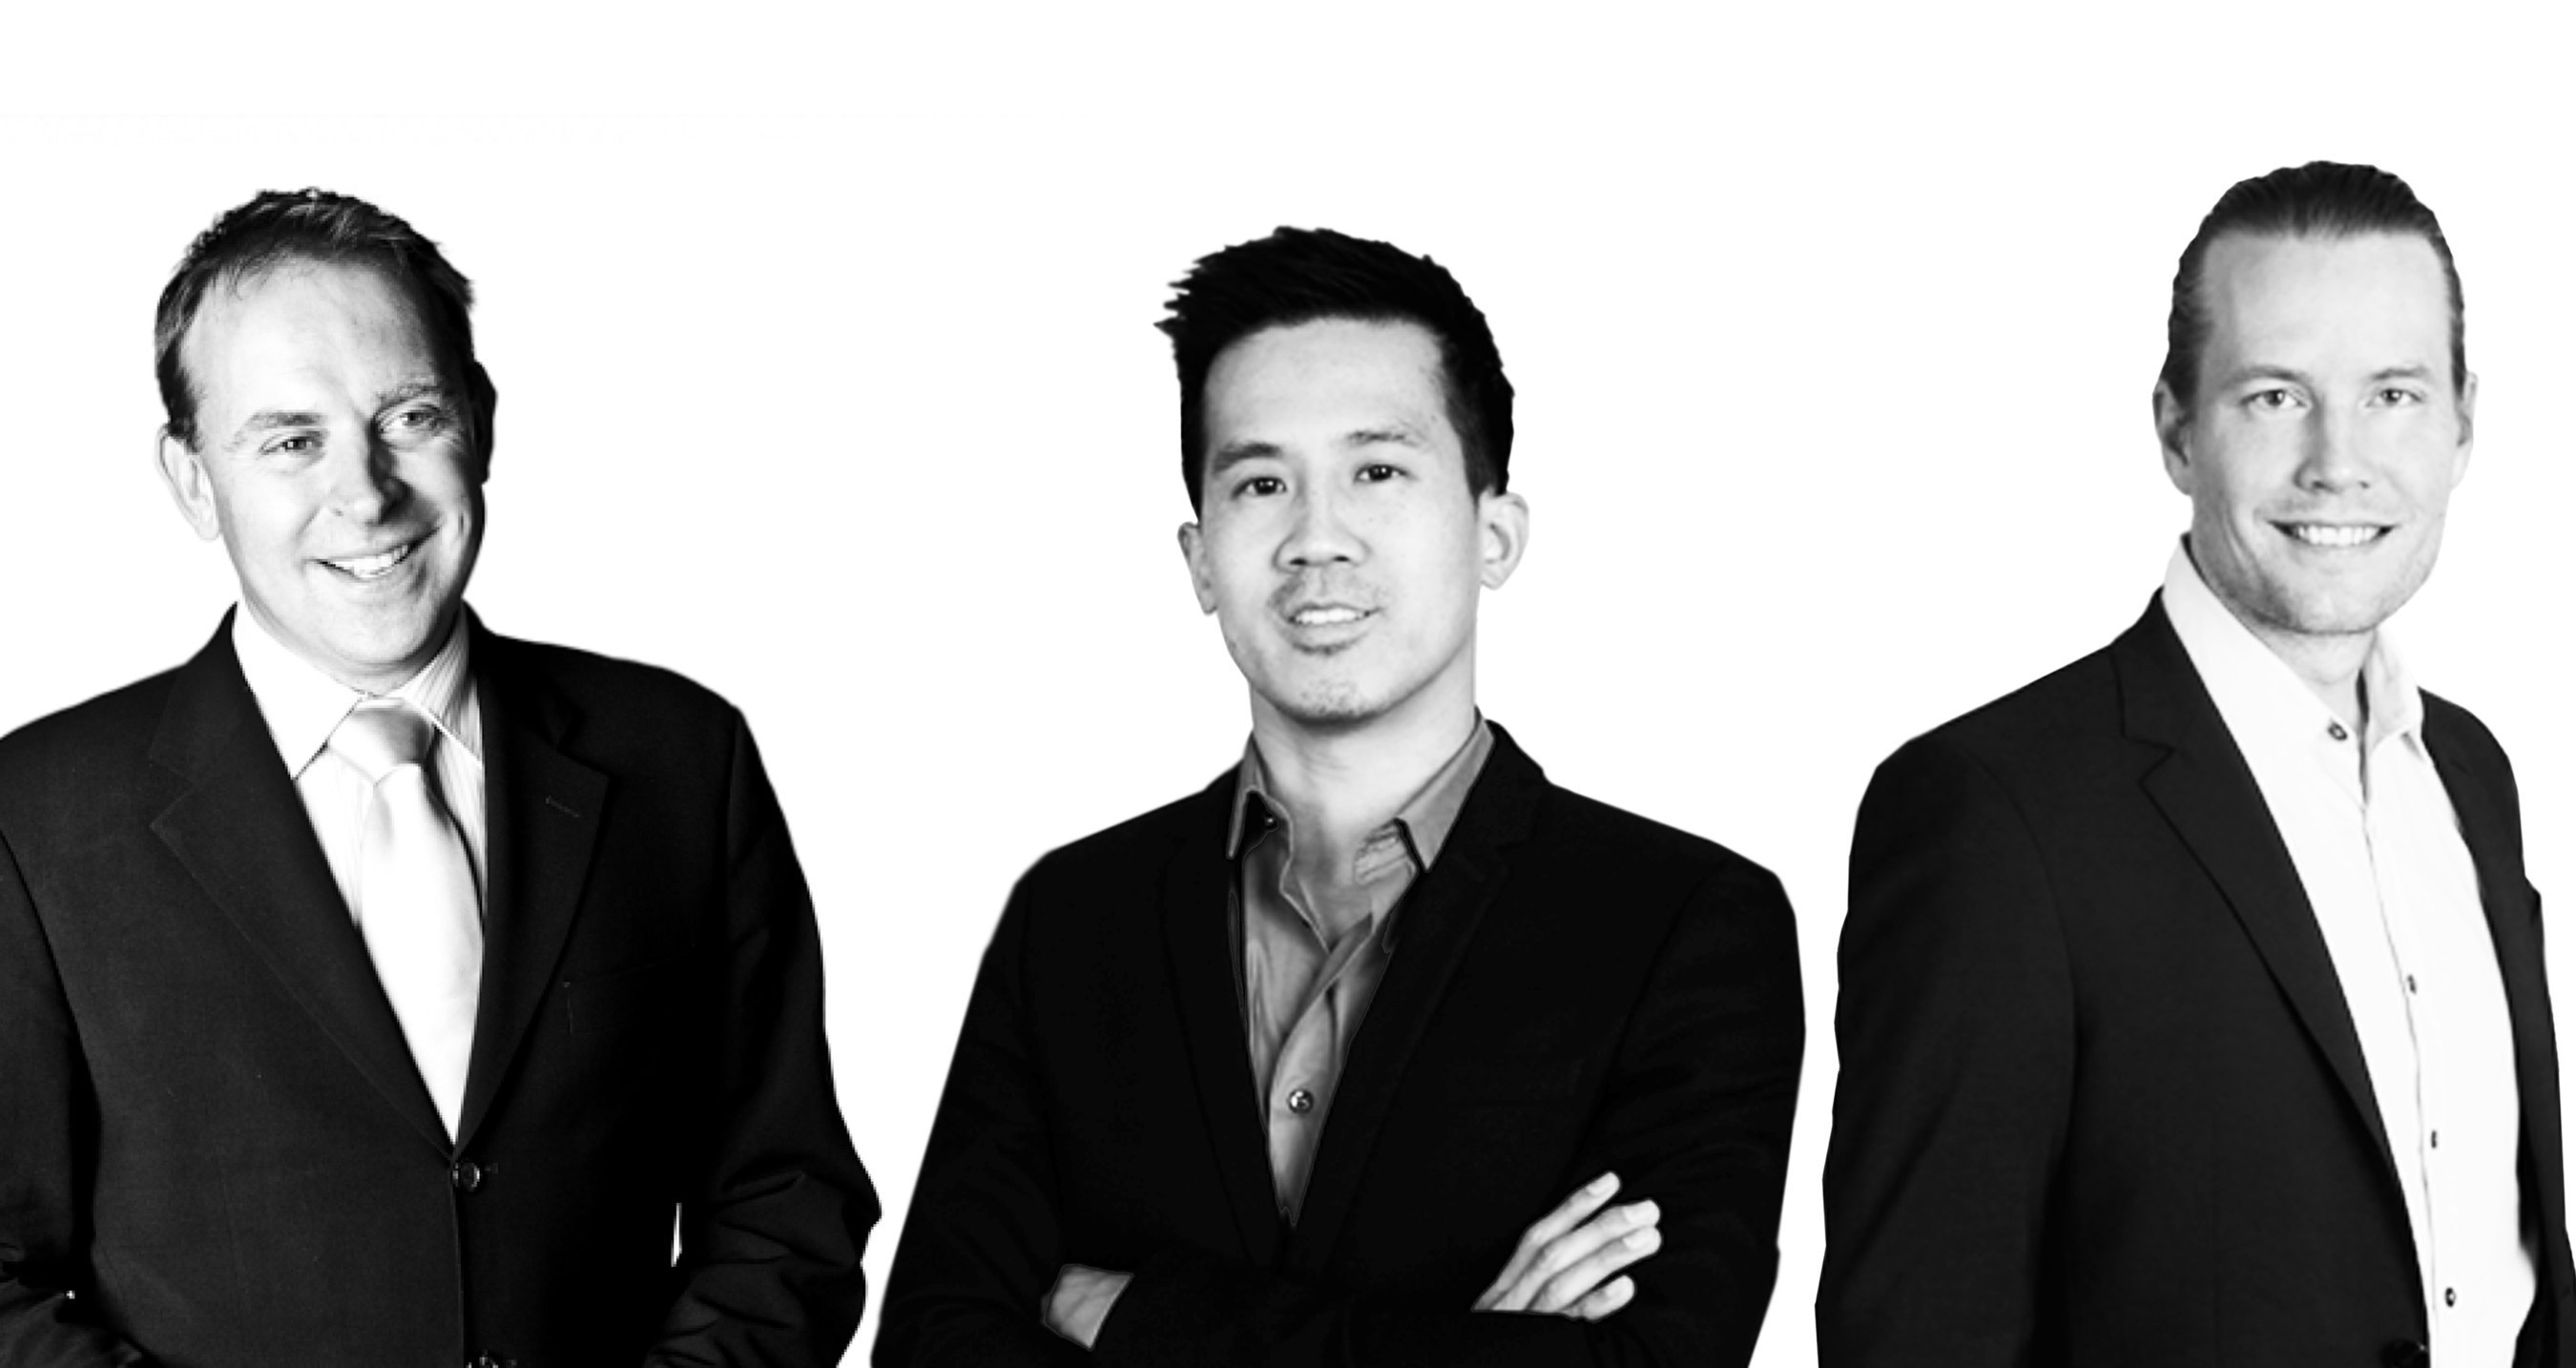 Market Tech Strategic Investment in glispa: Charles Butler CEO Market Tech Holdings (left), Gary Lin Founder & CEO glispa (center), Tim Nilsson Co-Founder & Managing Director (right)